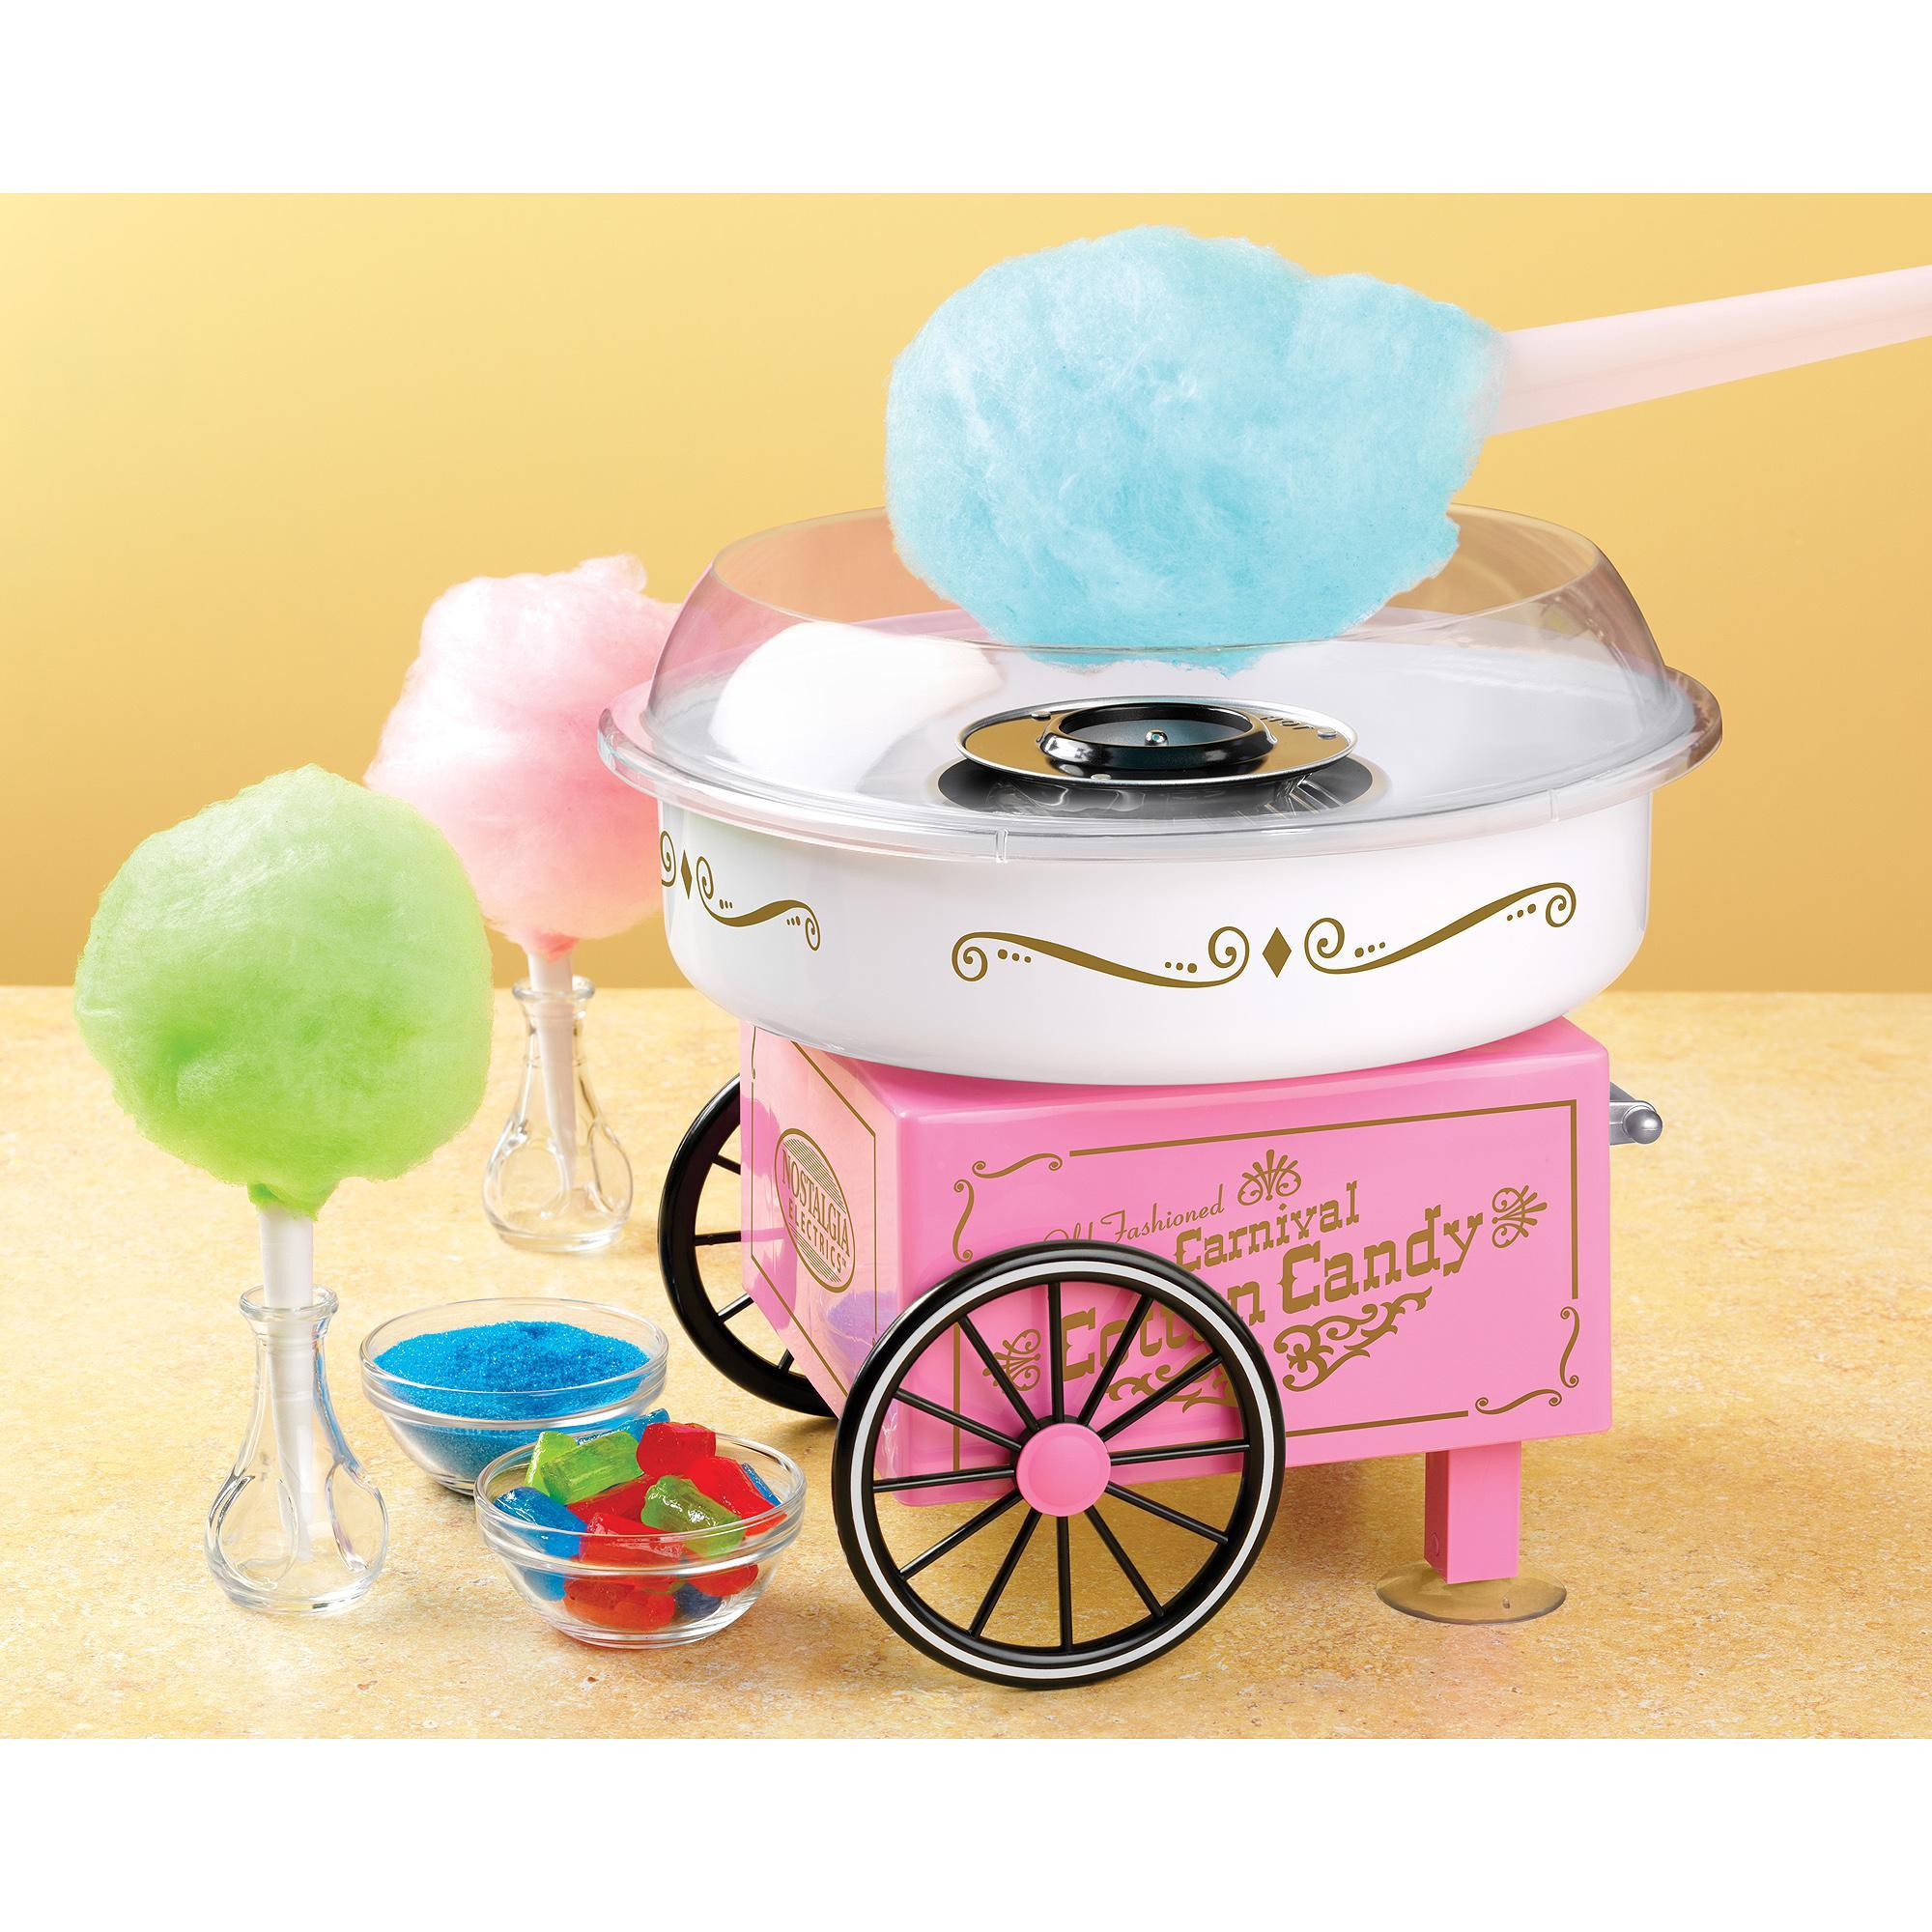 Nostalgia Vintage Collection Hard & Sugar-Free Candy Cotton Candy Maker